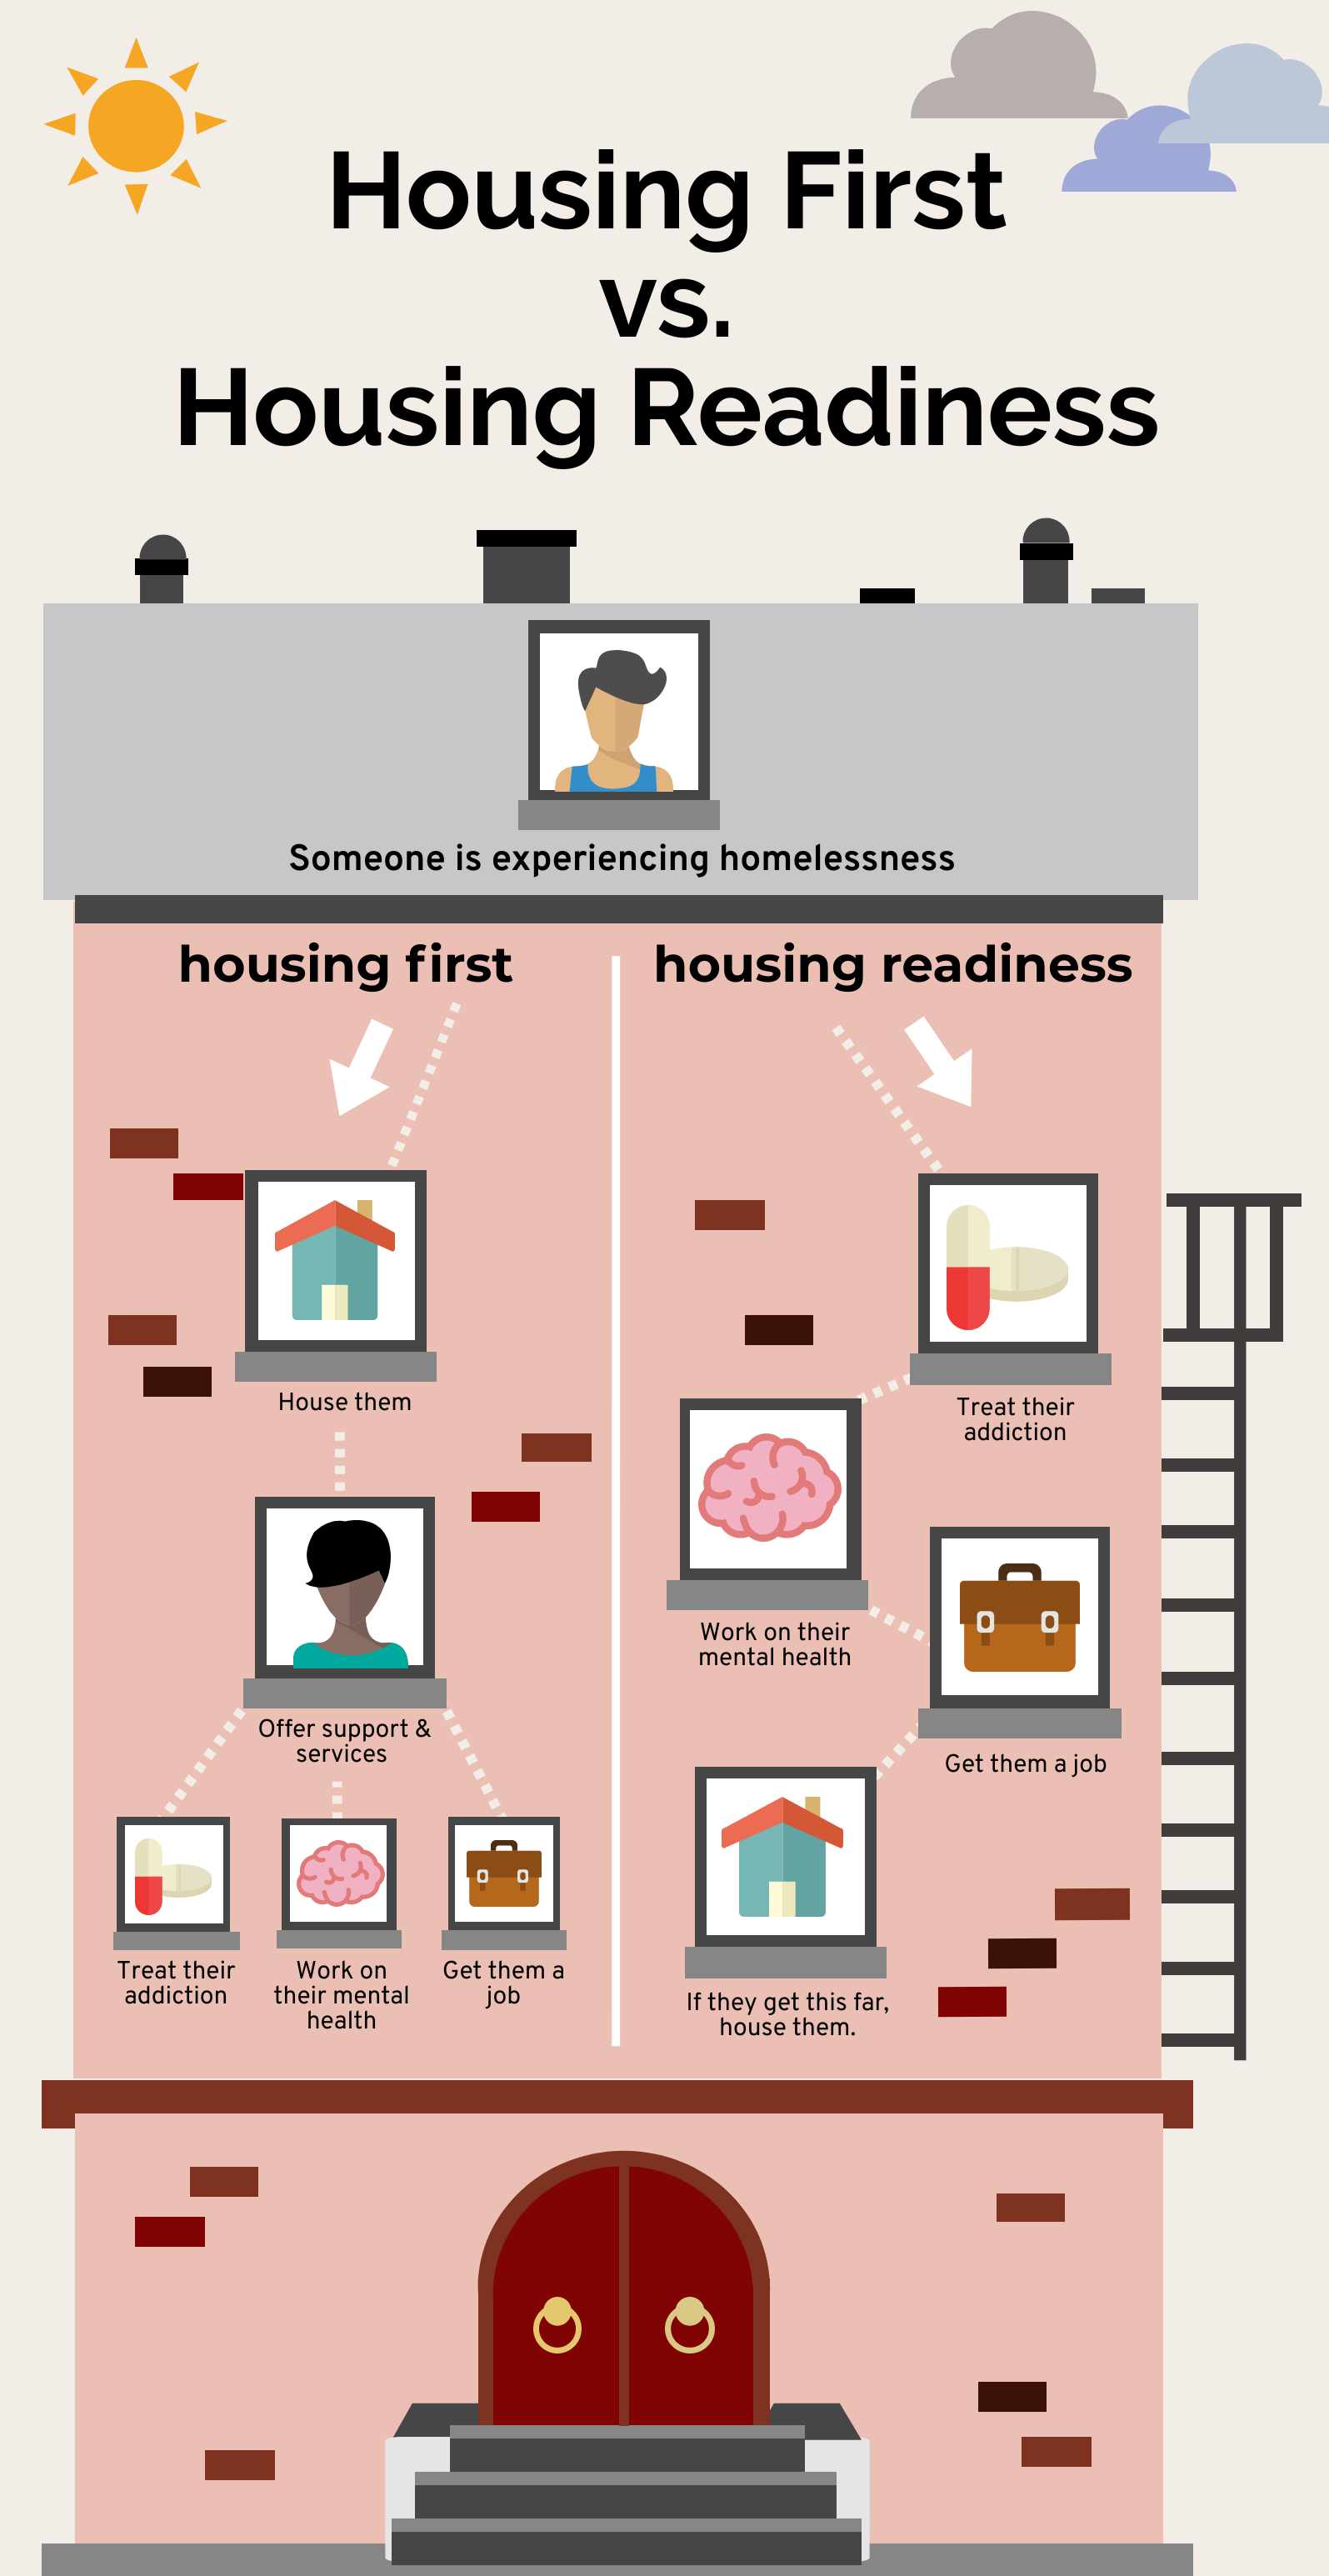 housing first vs housing readiness infographic